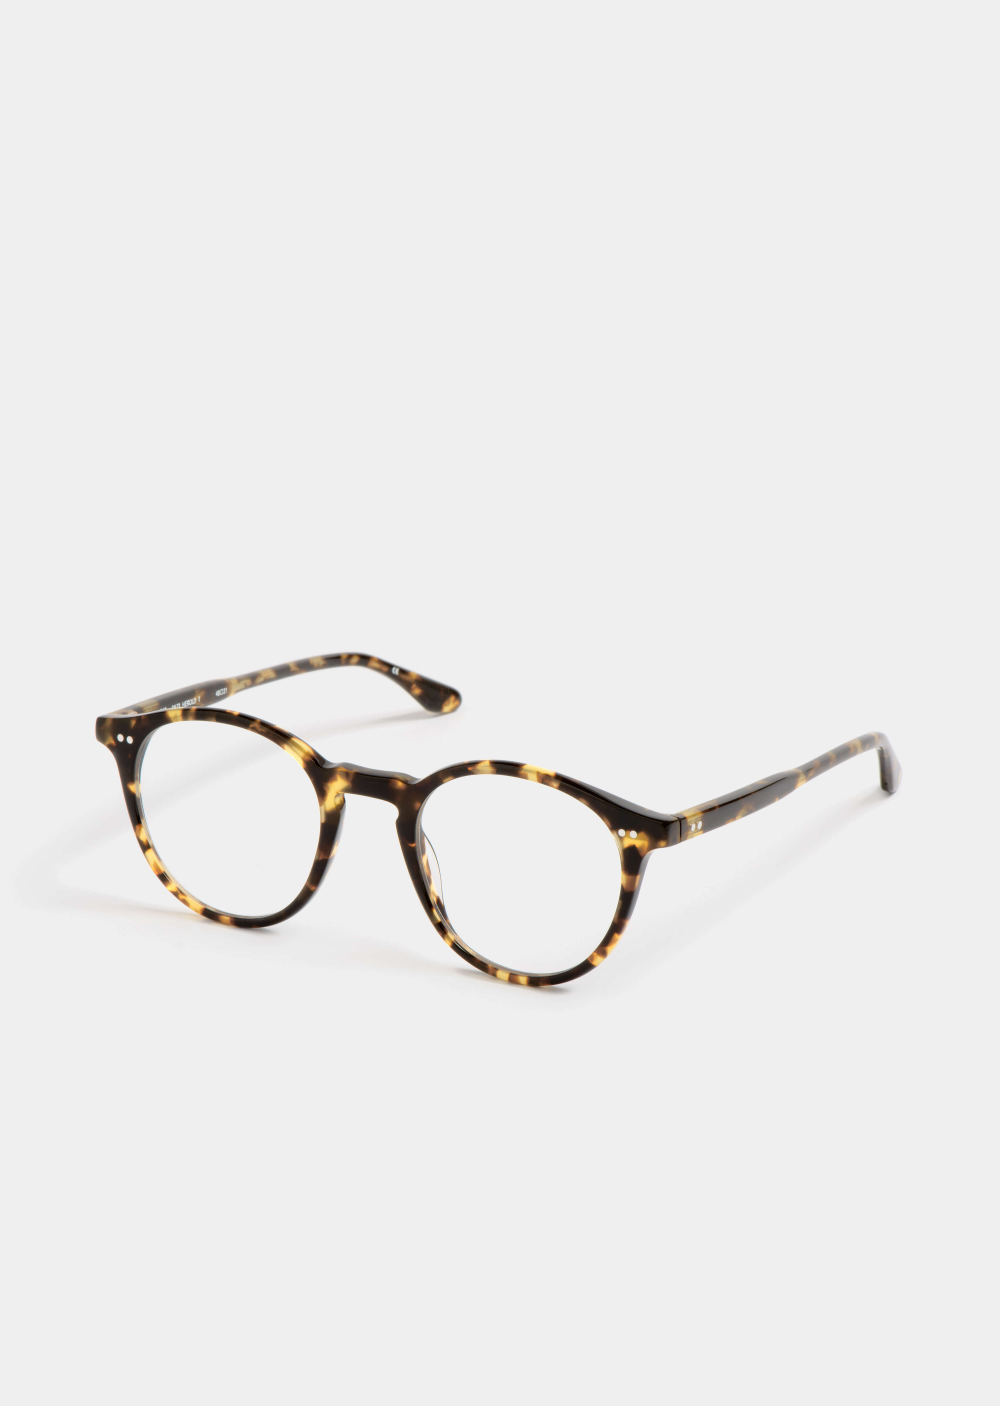 PETER AND MAY -  - LT3 Herold RX tortoise